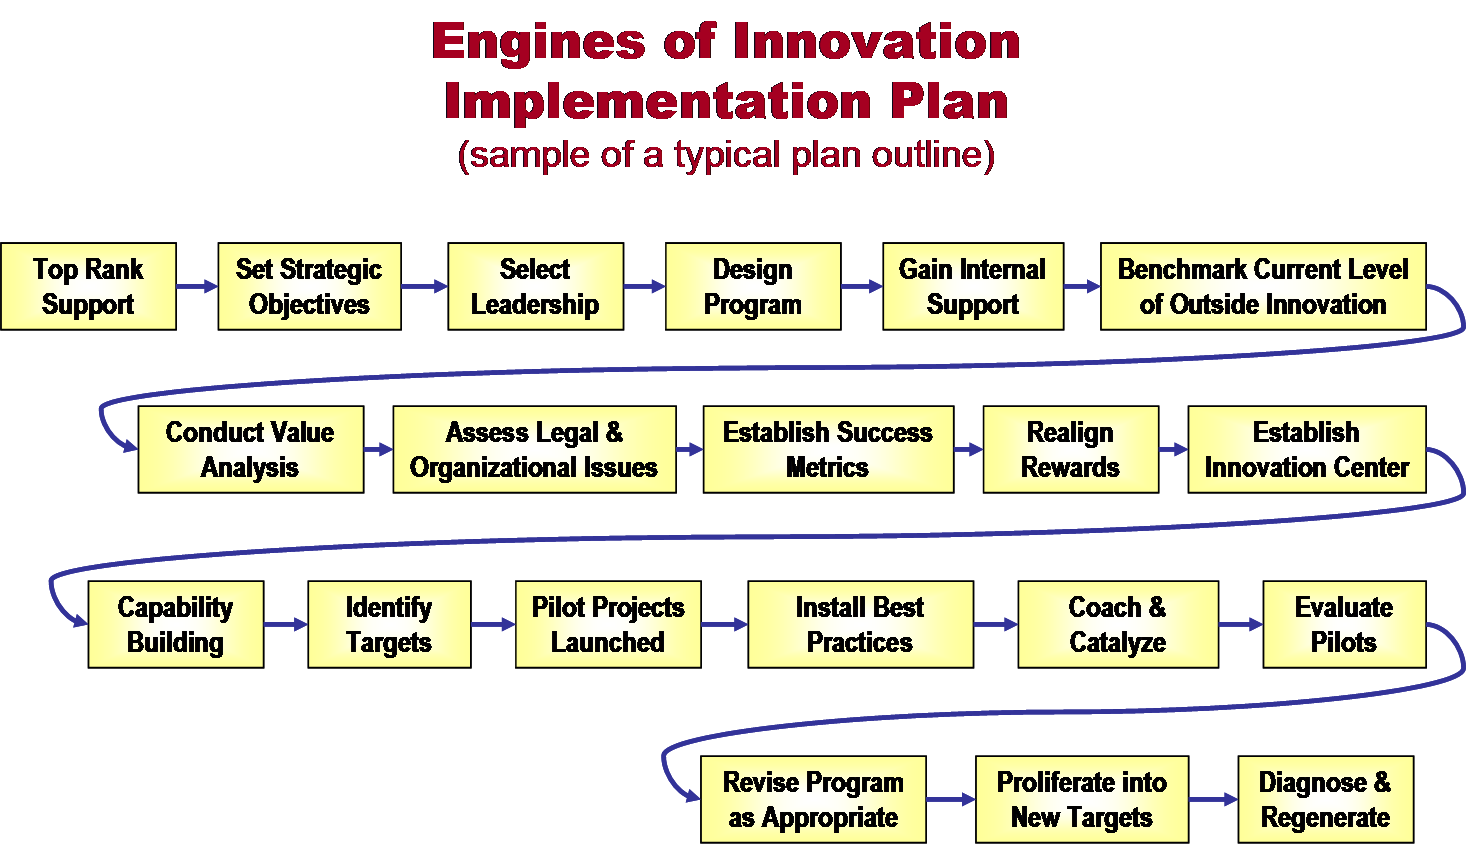 Engines of Innovation Implementation Plan